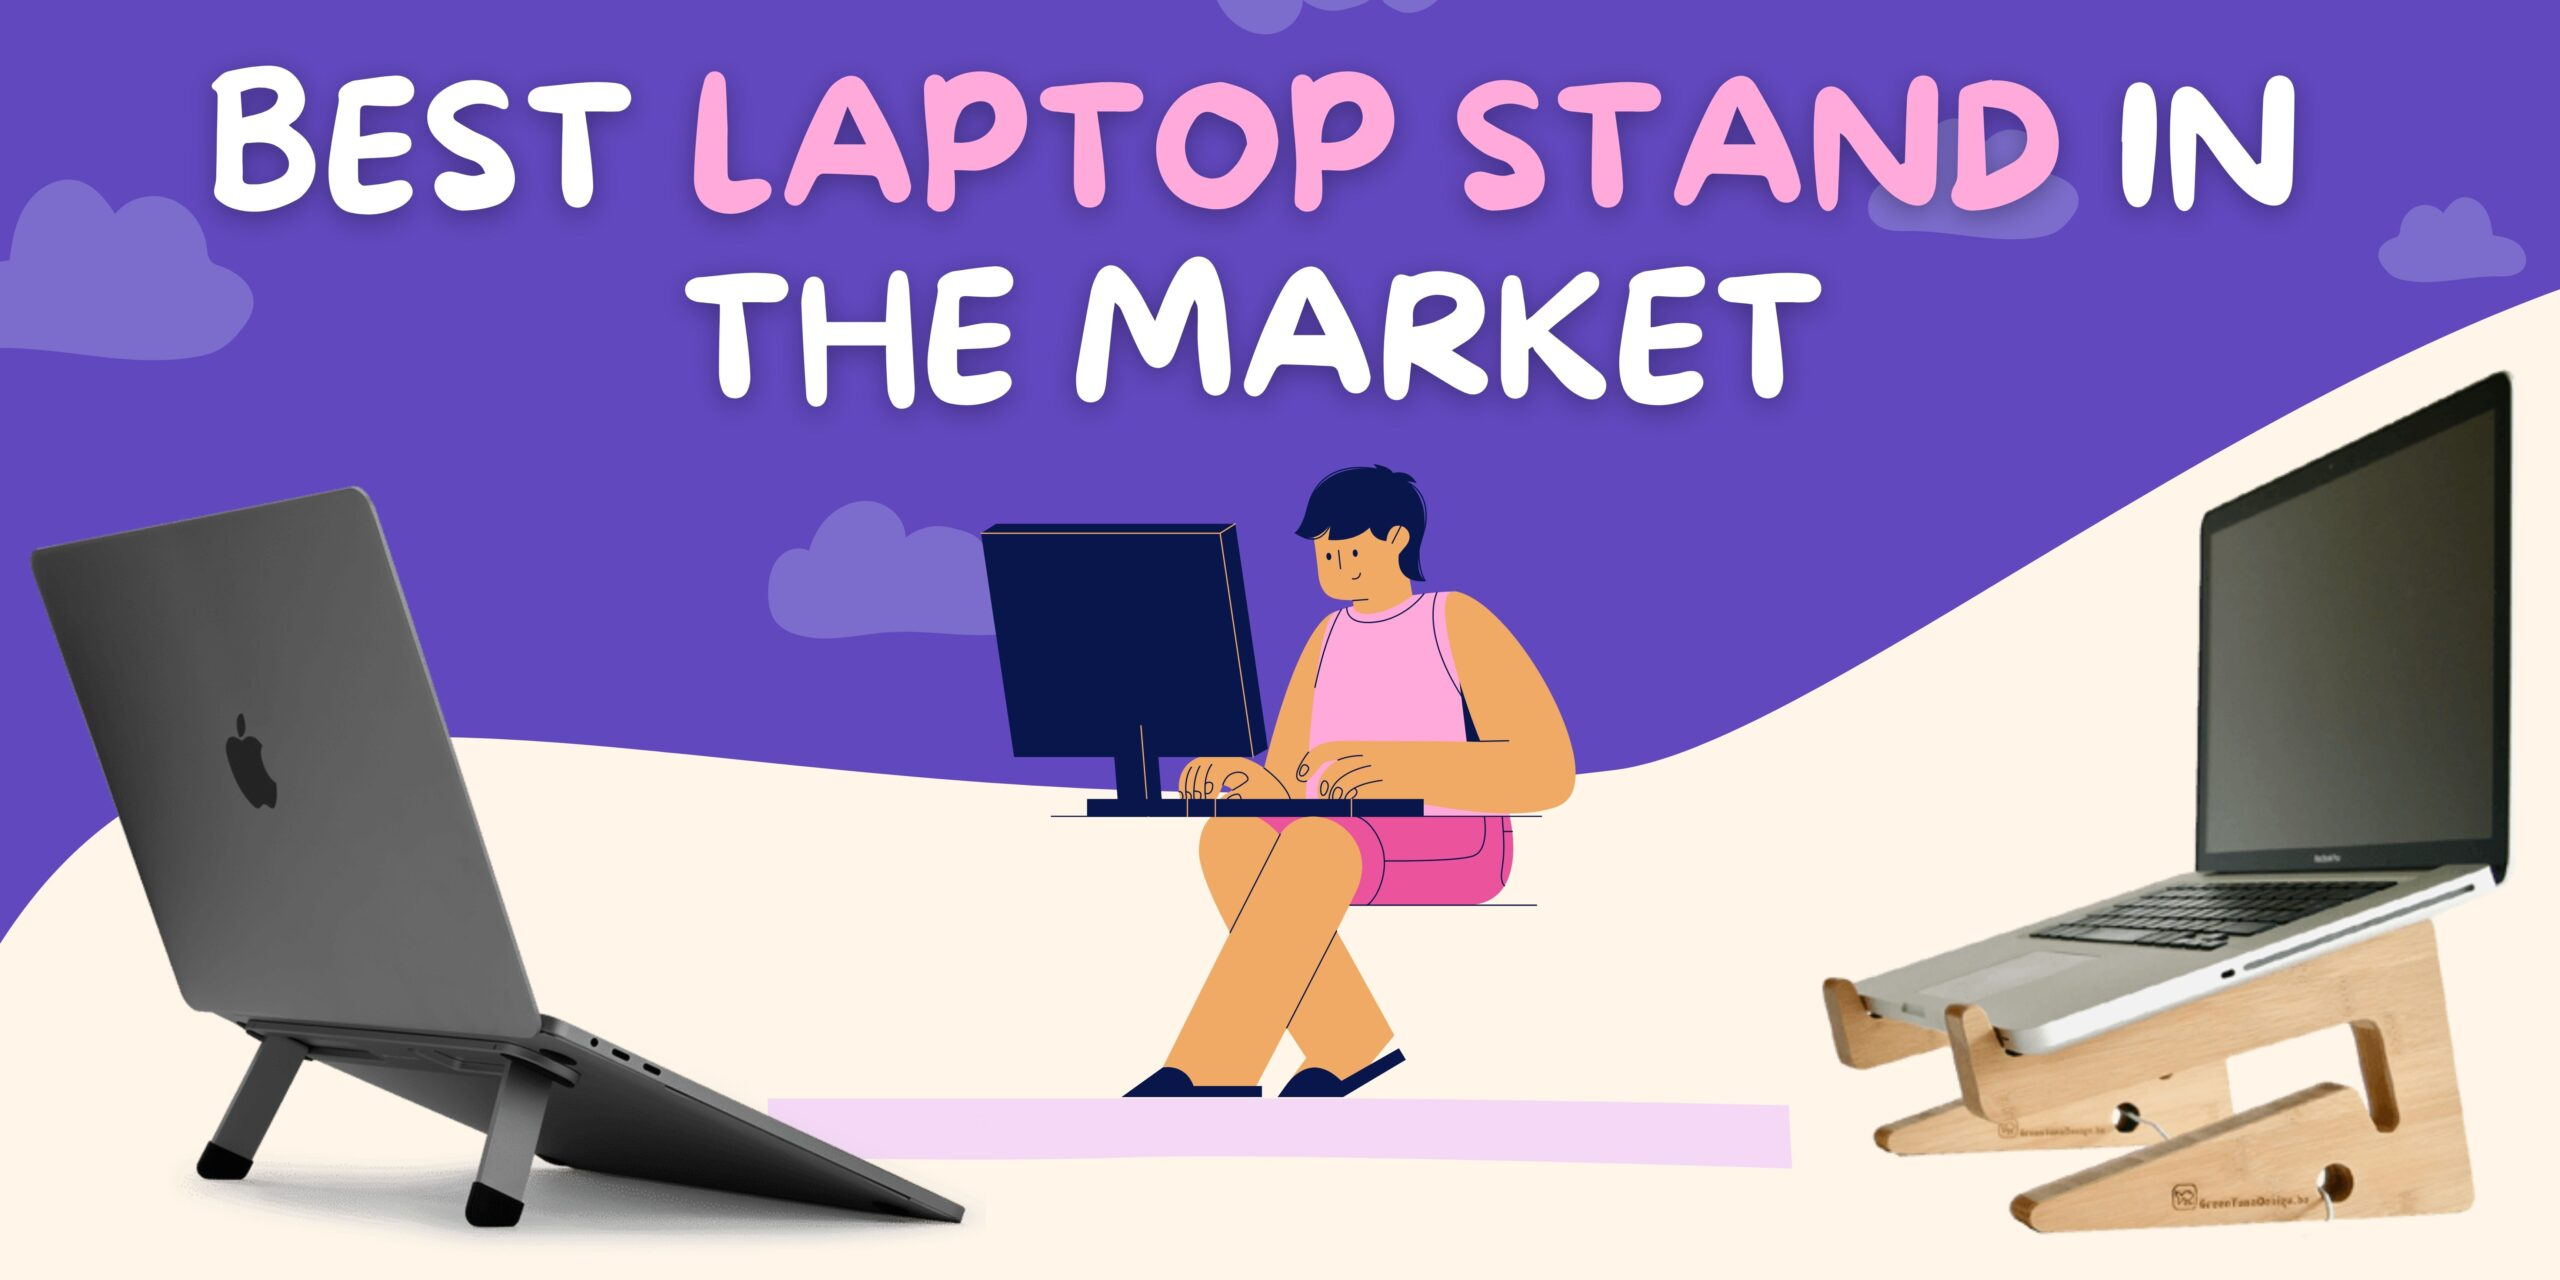 Top 5 Best Laptop stand in the Market